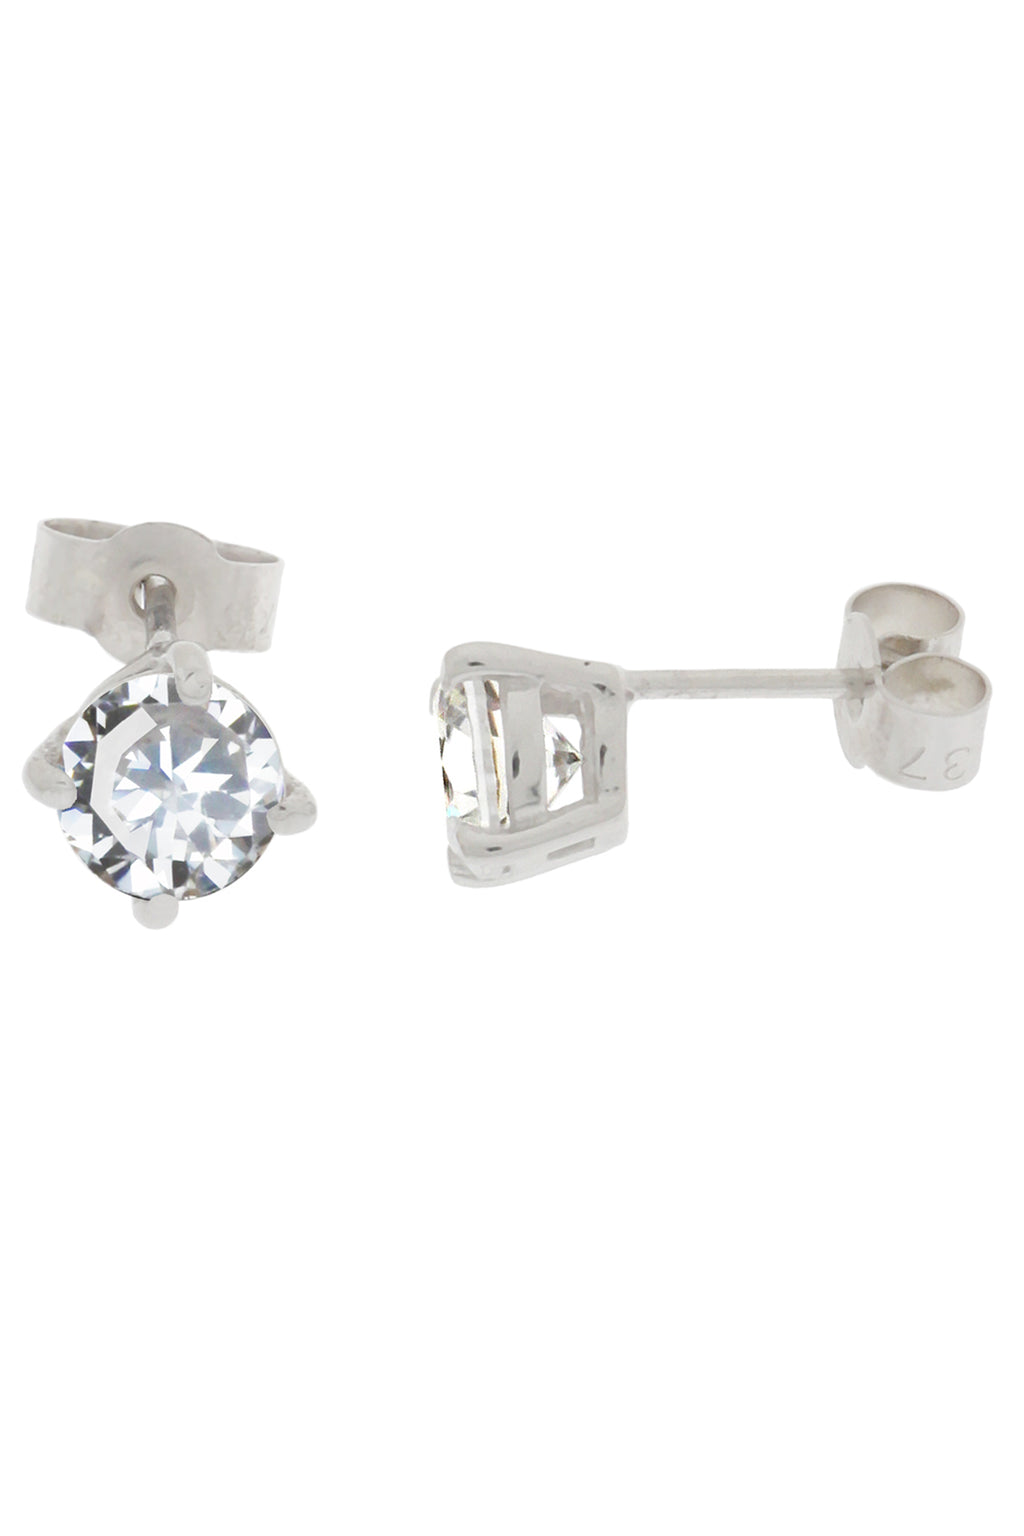 Cubic Zirconia White Gold Stud Earrings